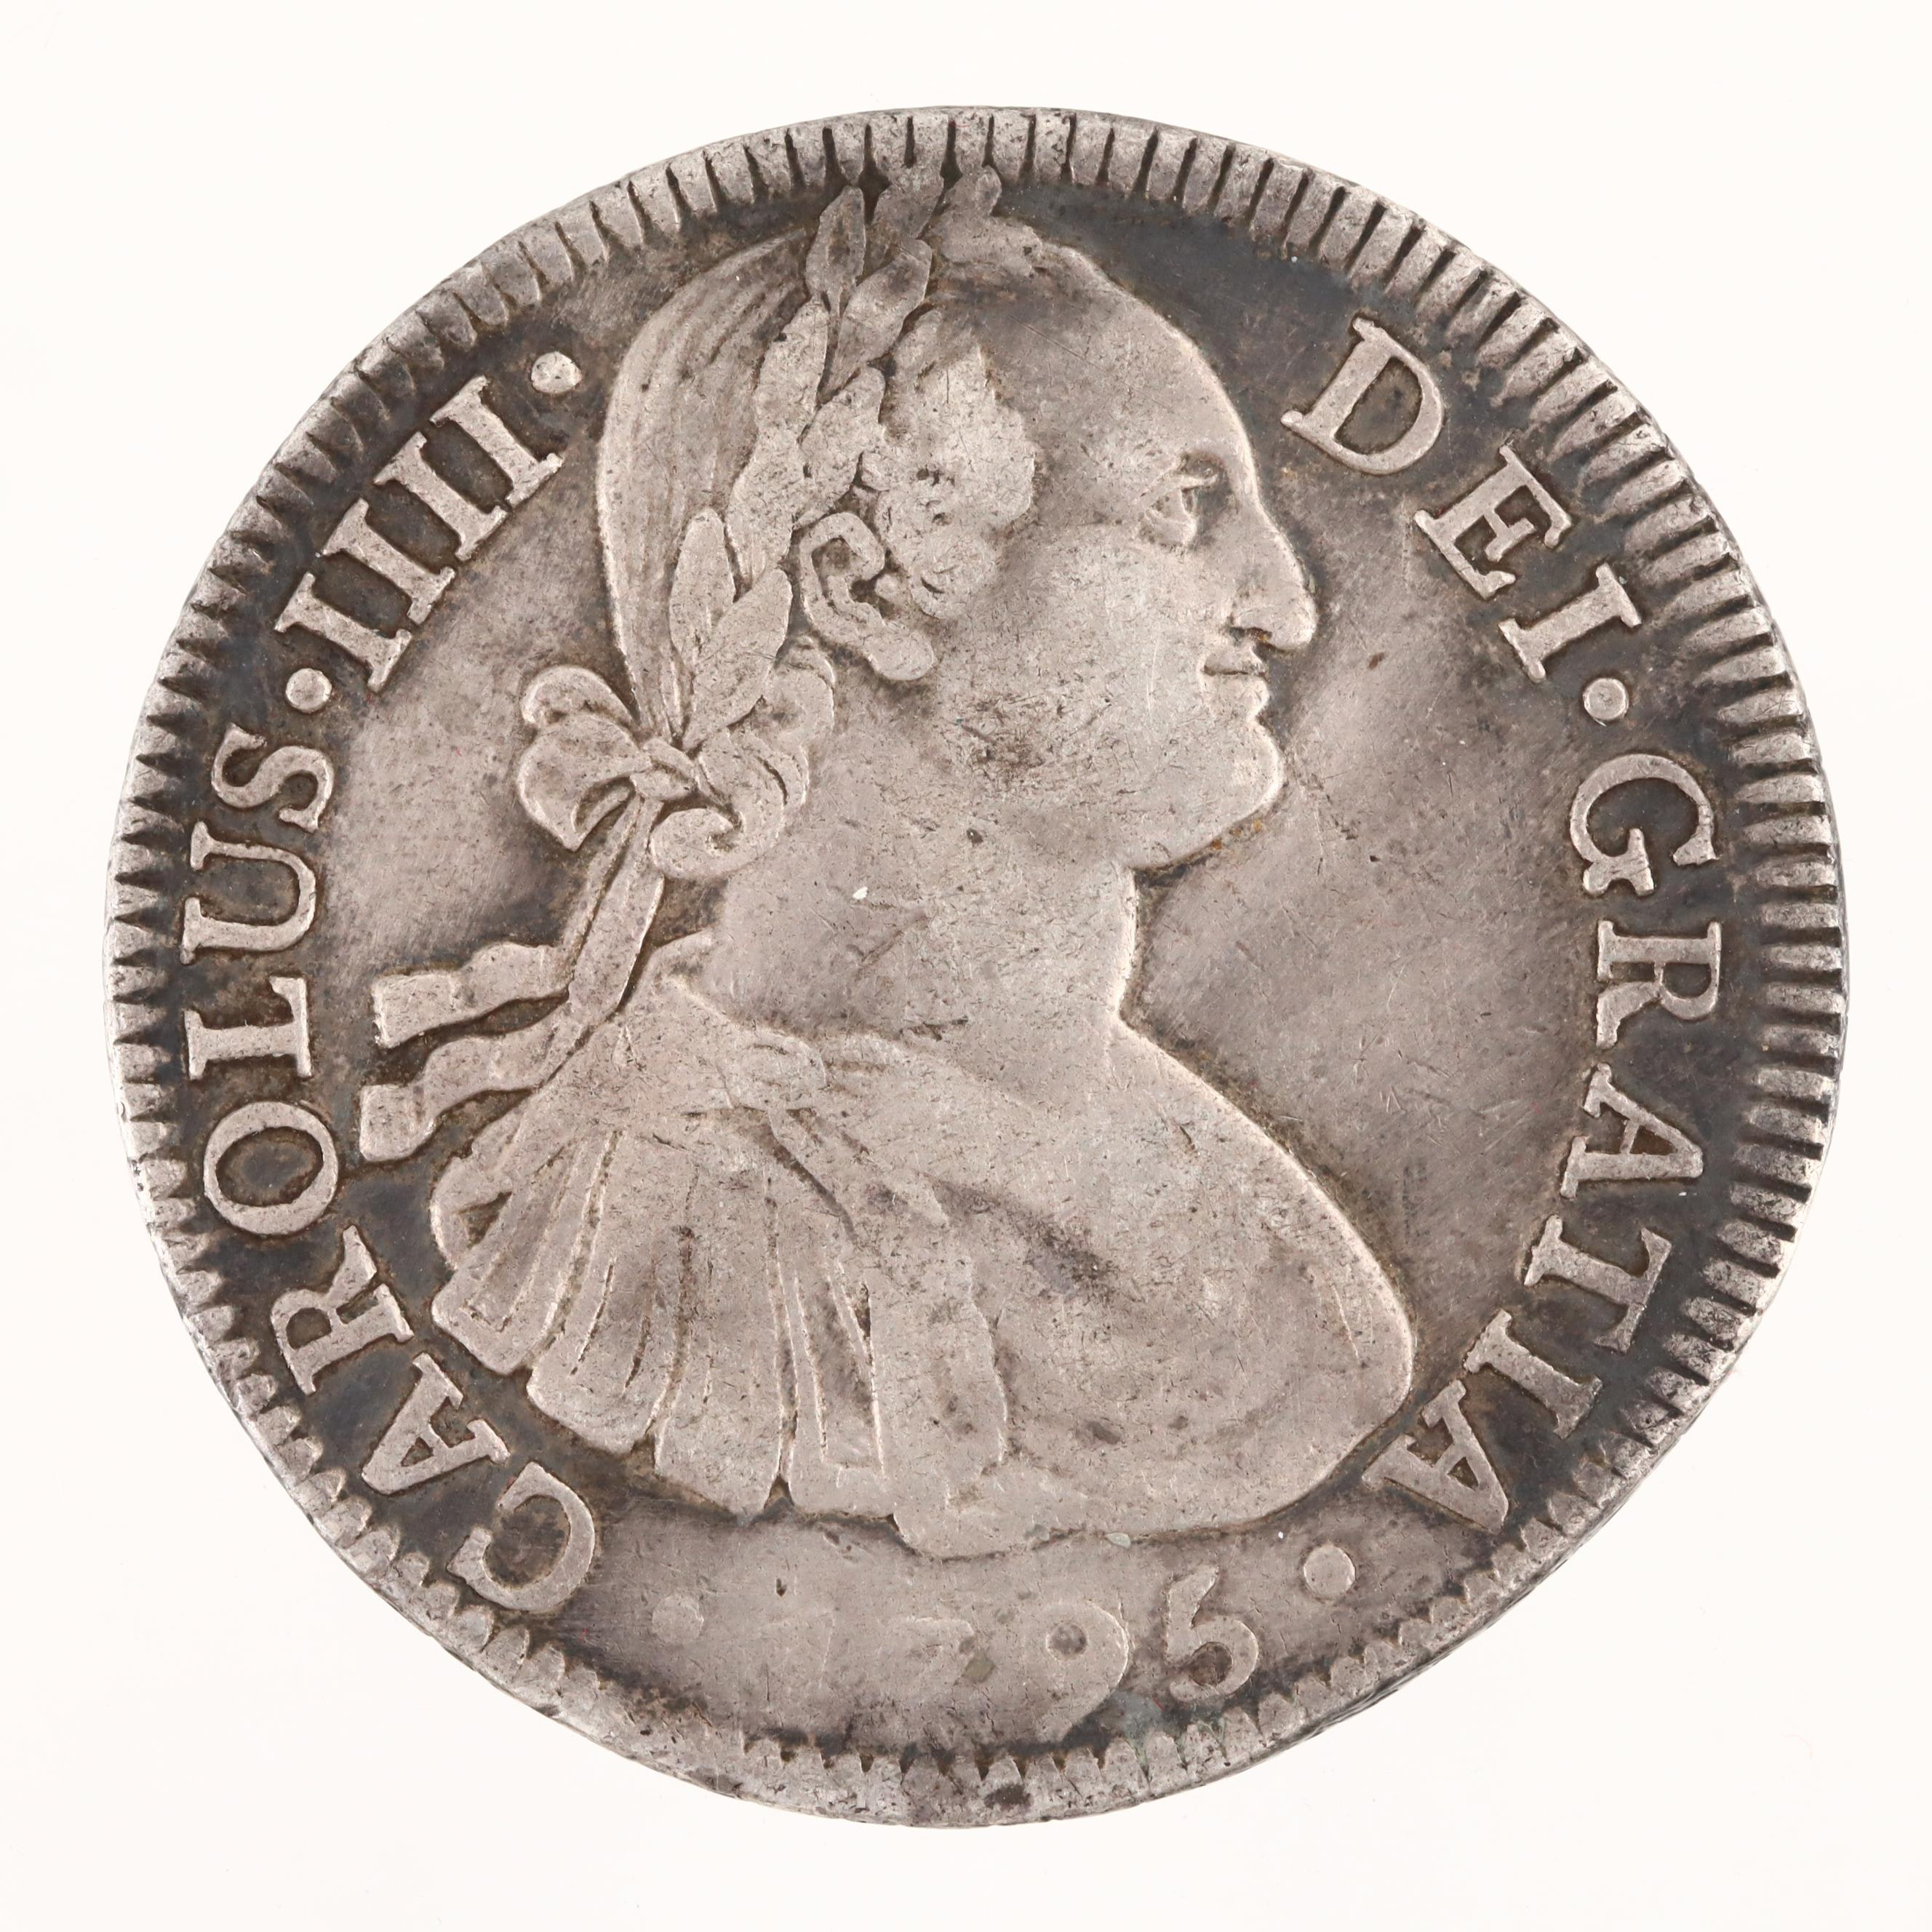 1795 Mexican Colonial 8-Reales Silver Coin of Carlos IV